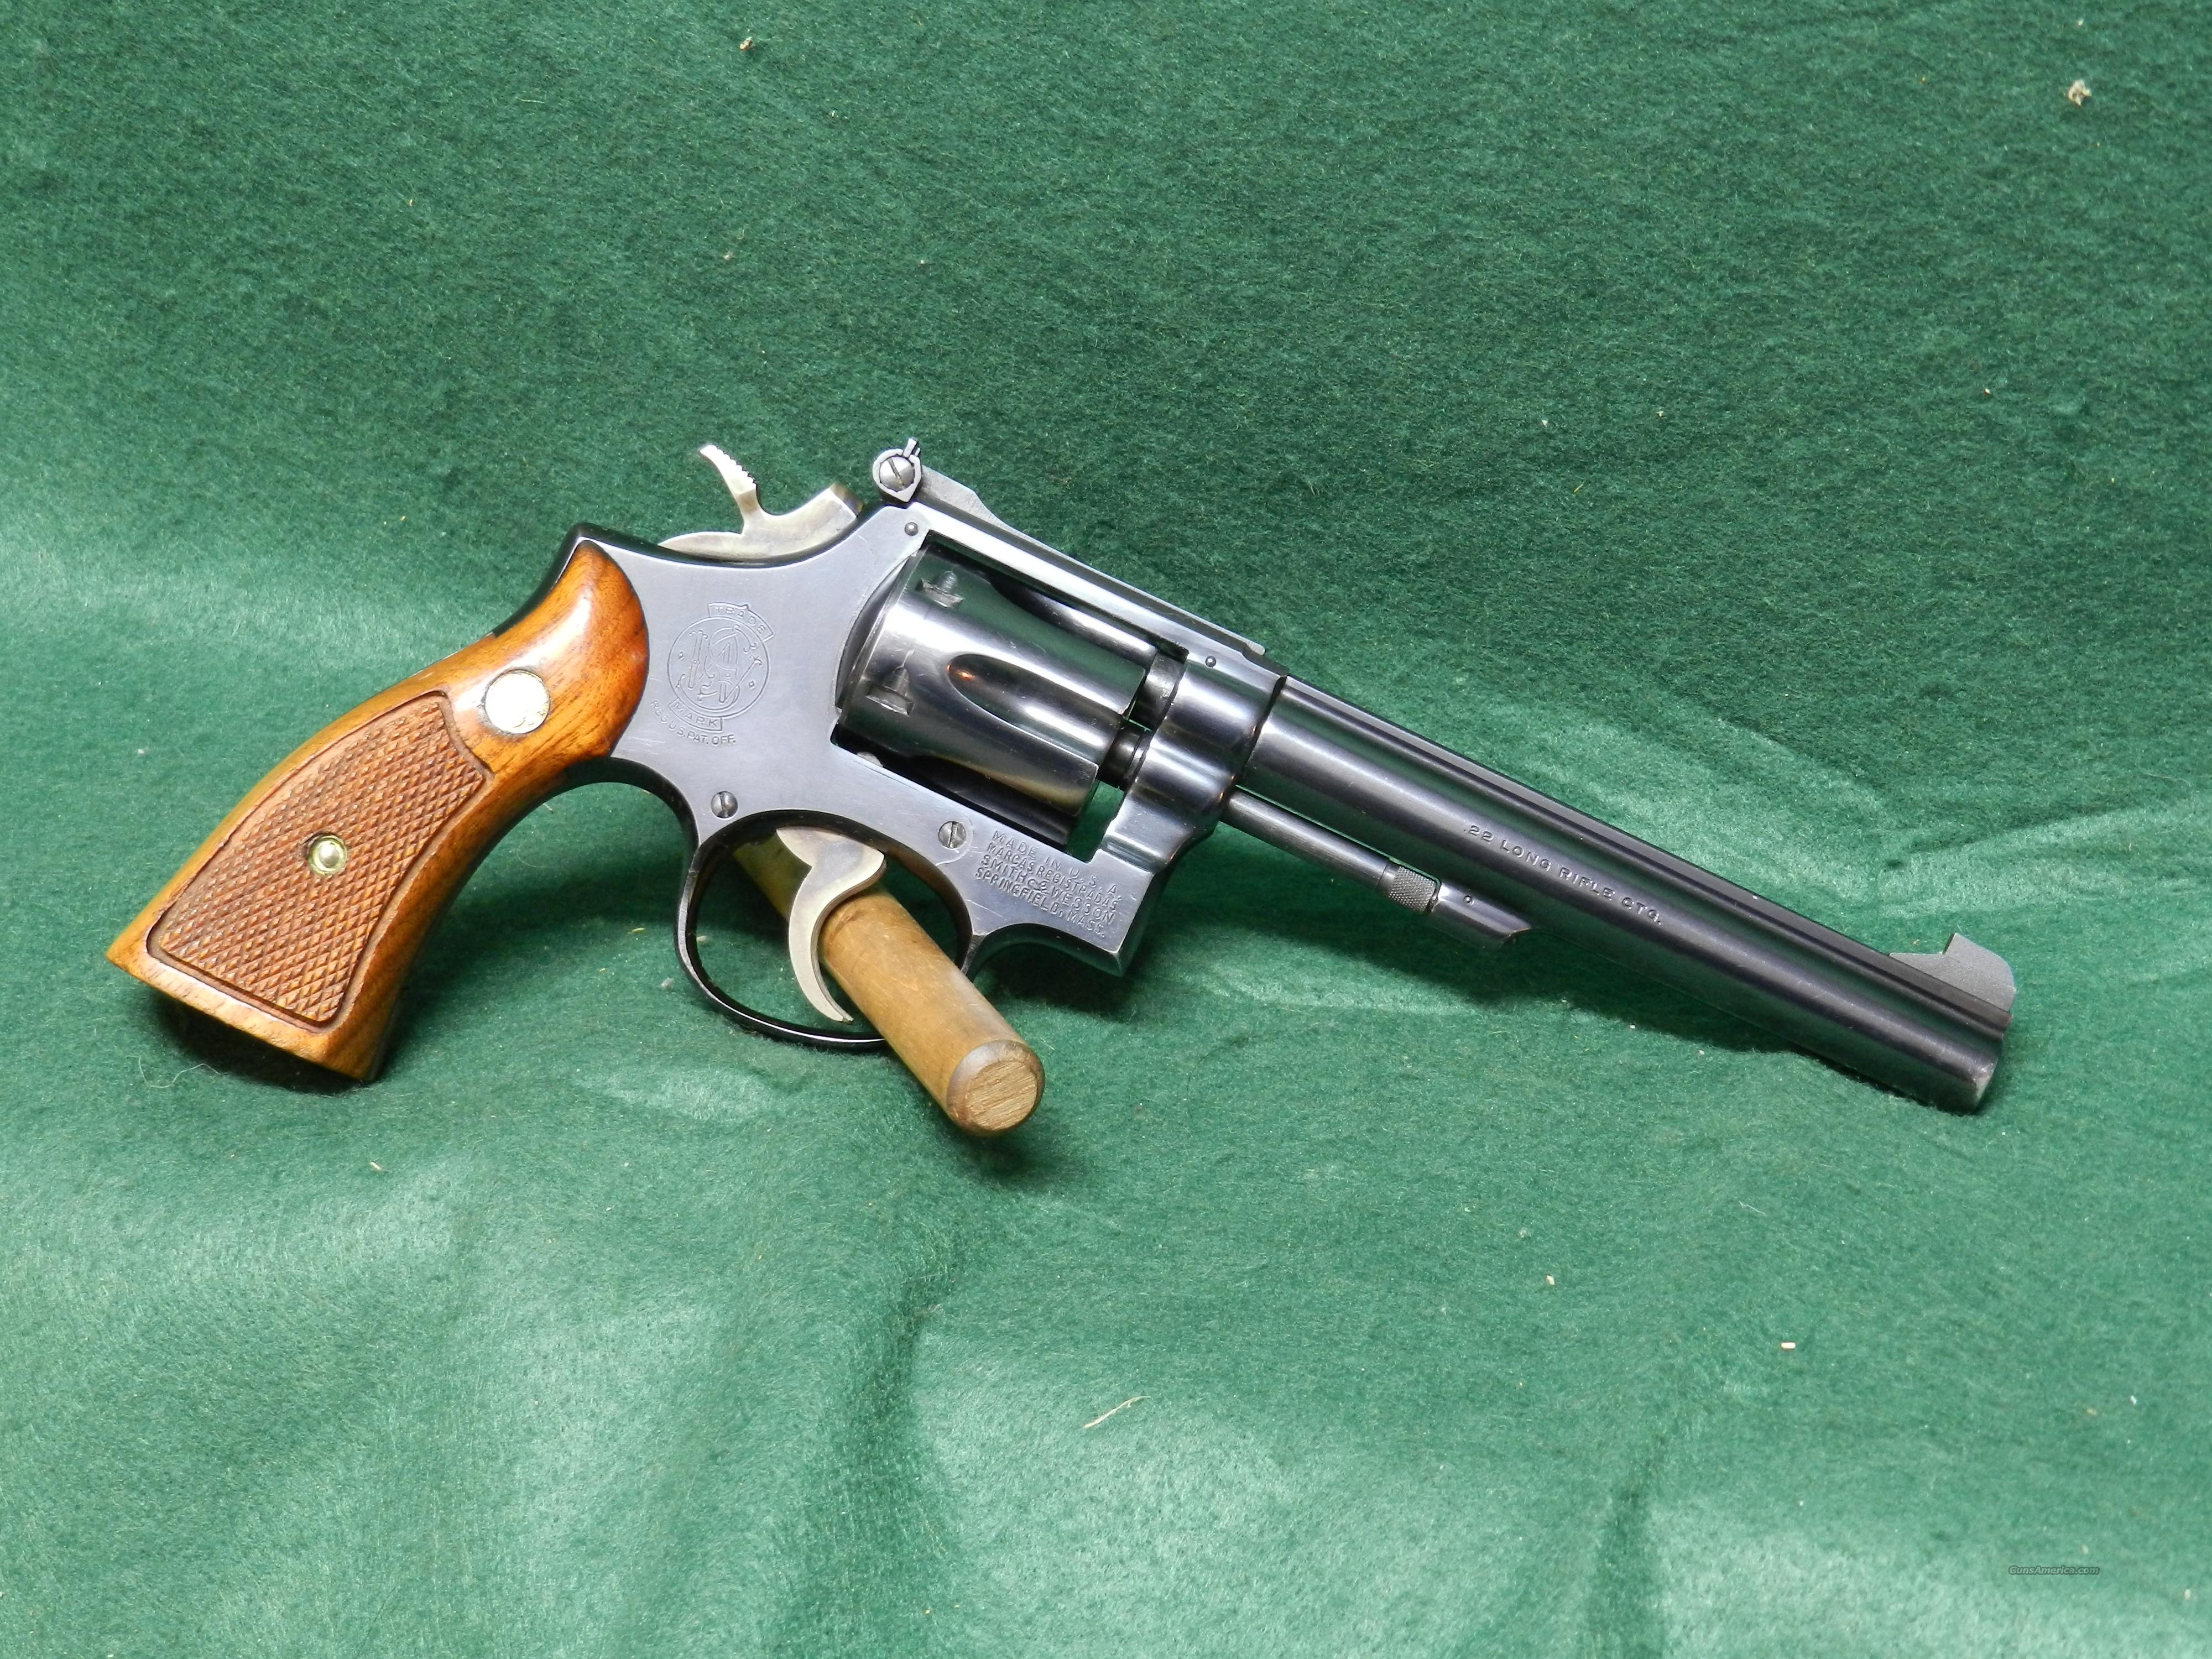 Smith & Wesson Model 17-3  Guns > Pistols > Smith & Wesson Revolvers > Full Frame Revolver